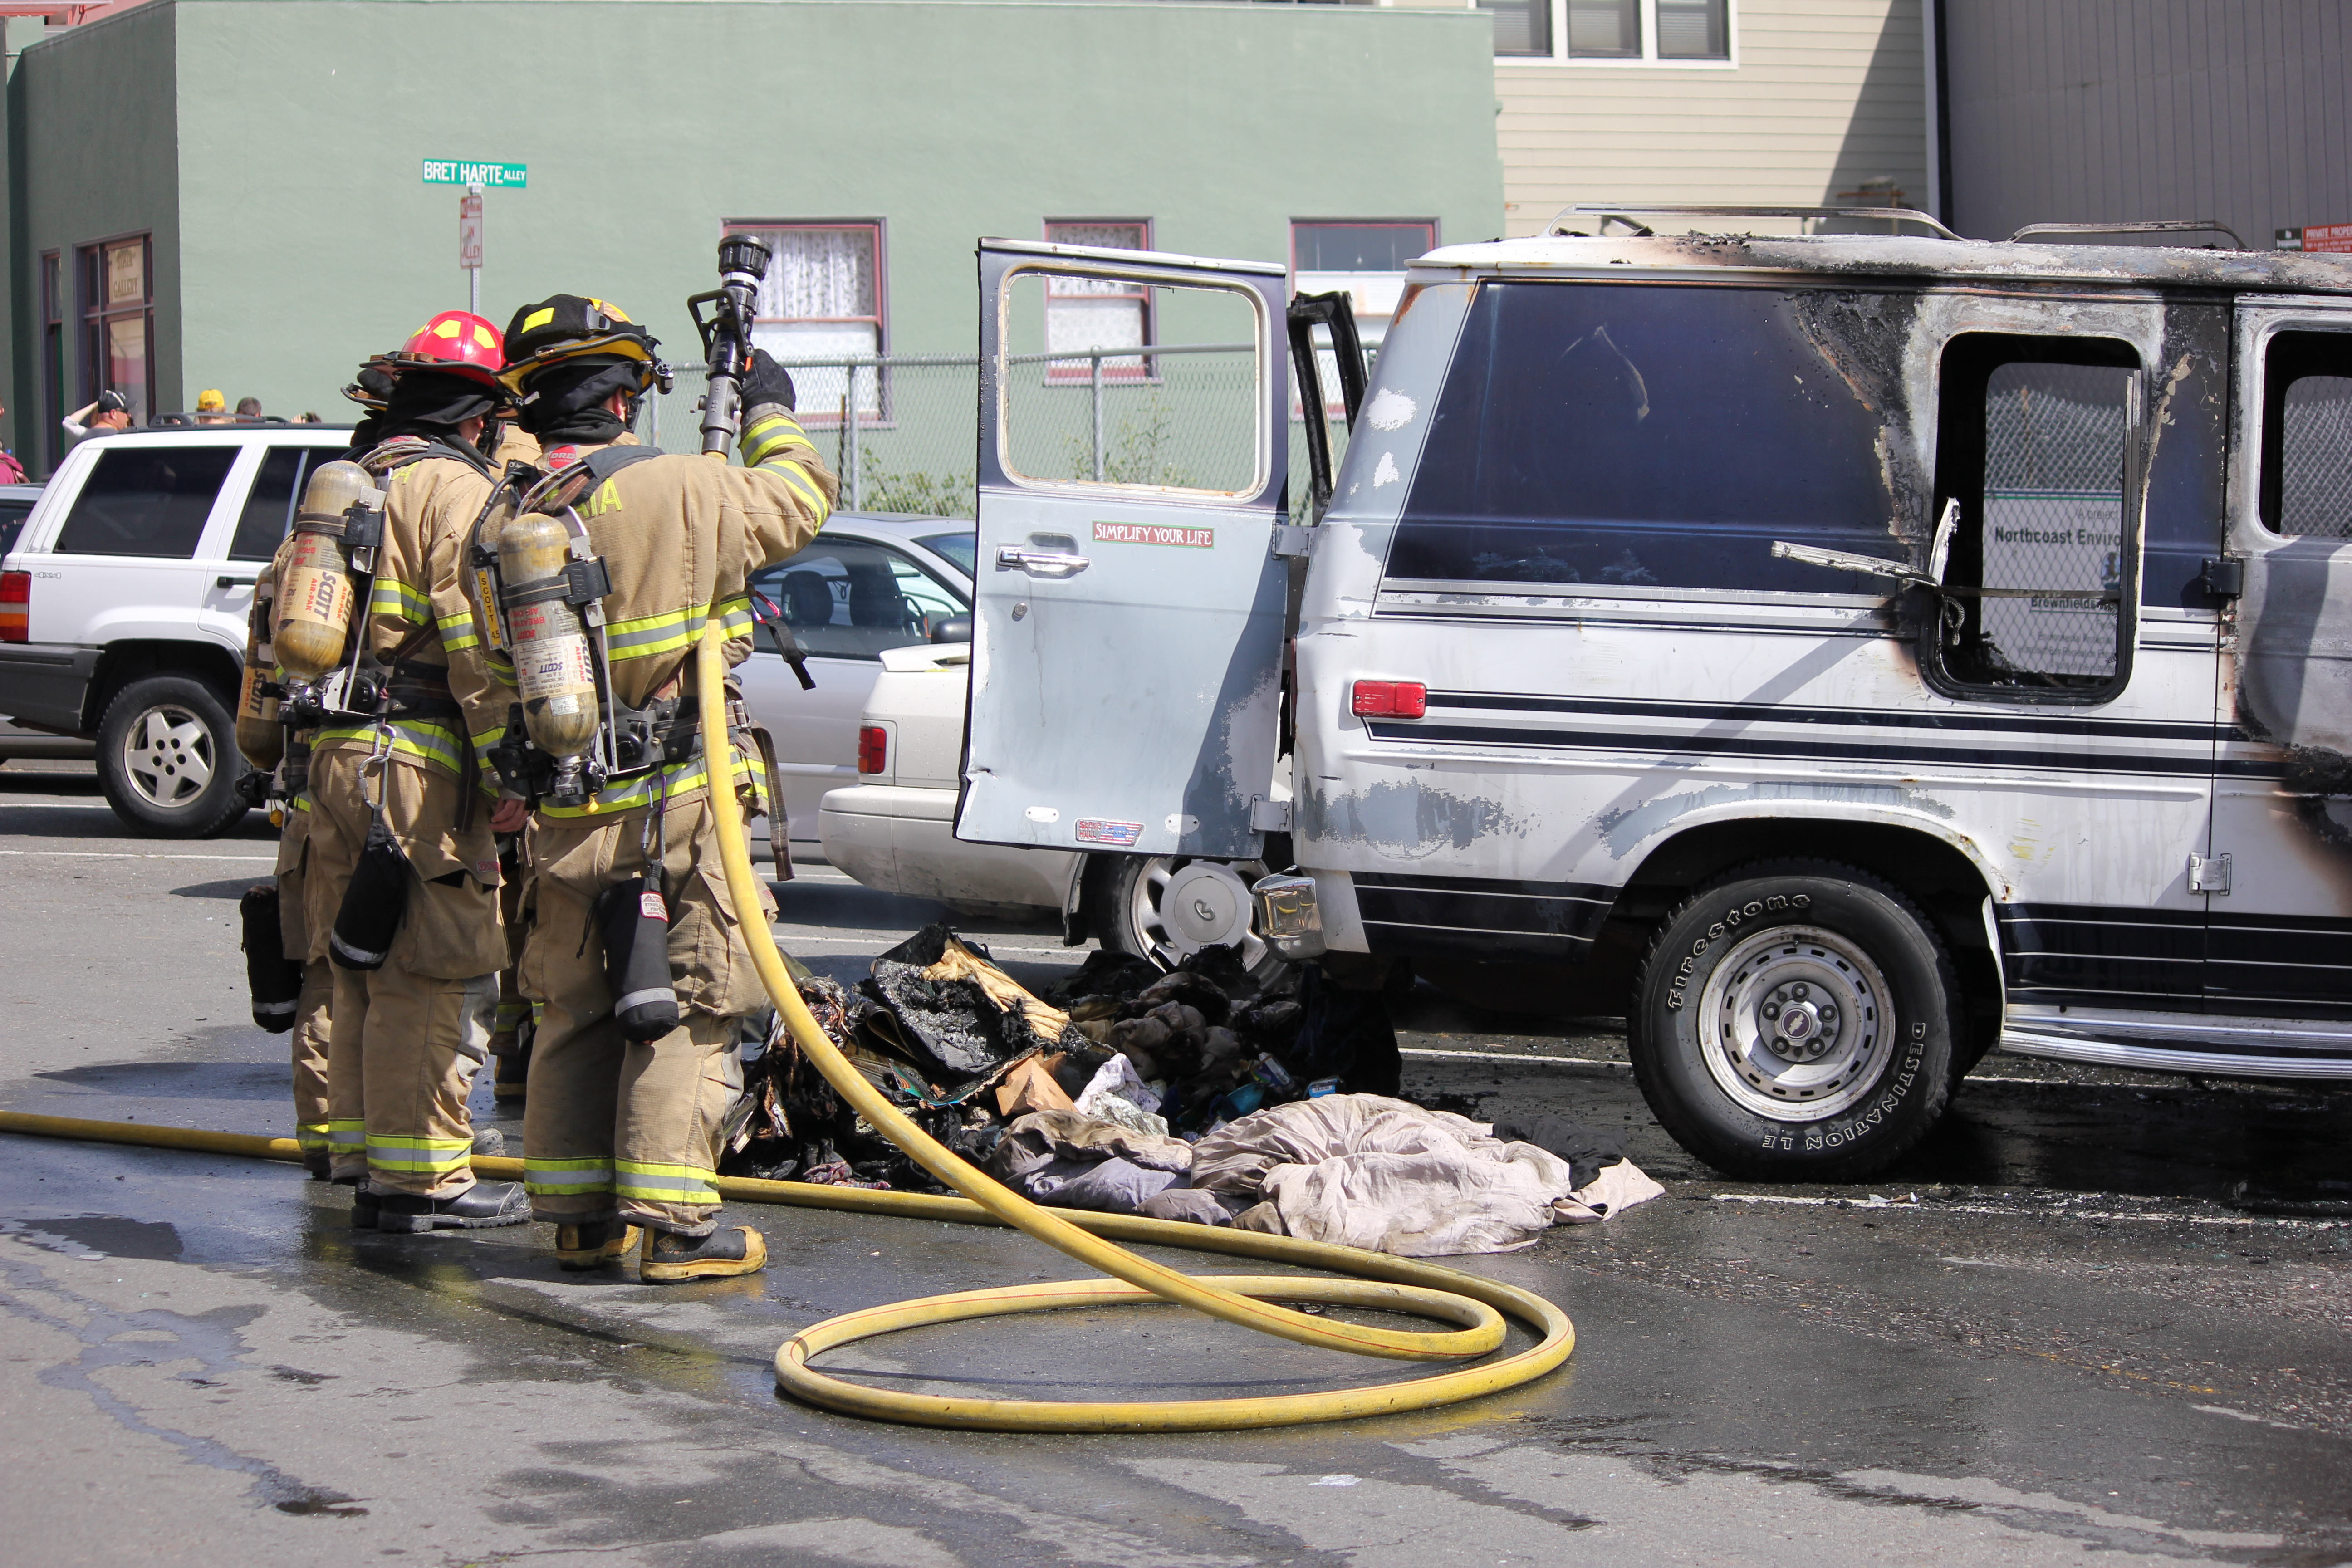 Vehicle Fire off of the Arcata Plaza